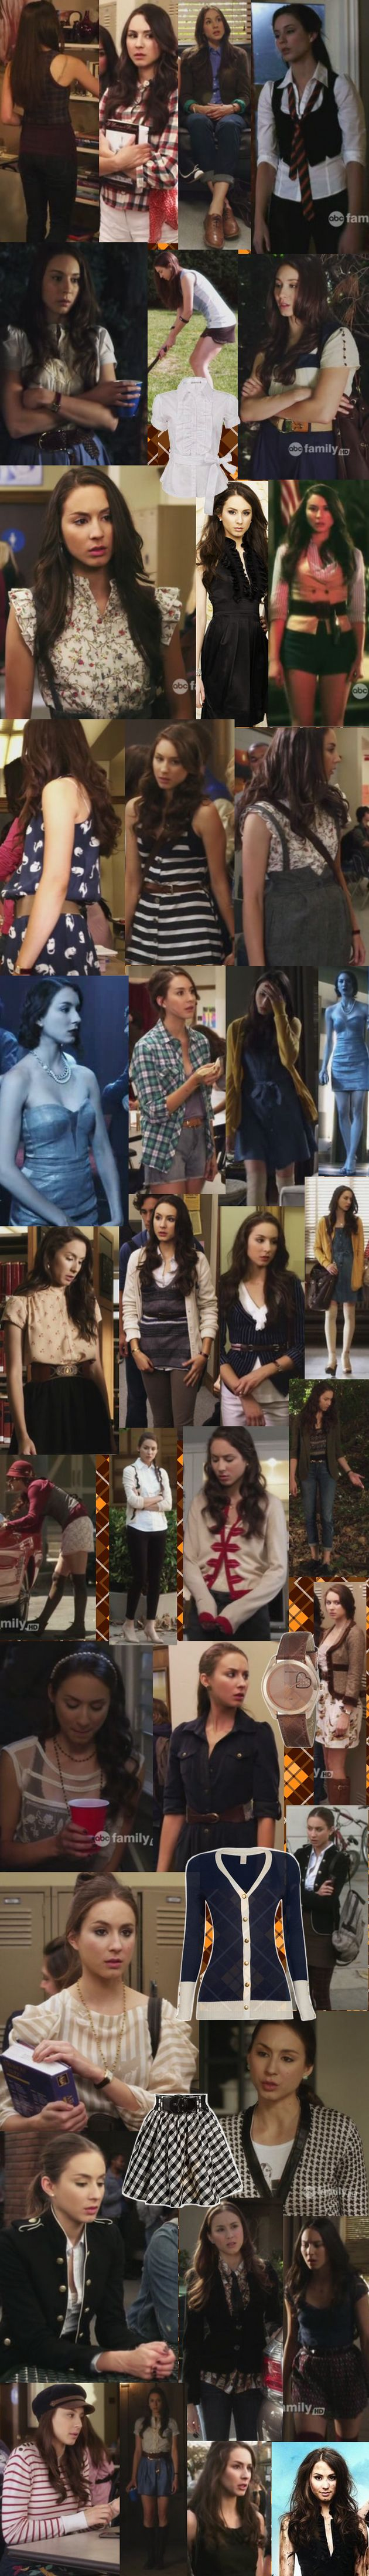 Pudim Engorda: Especial: Pretty Little Liars - Spencer Hastings She has some cute stuff!!!